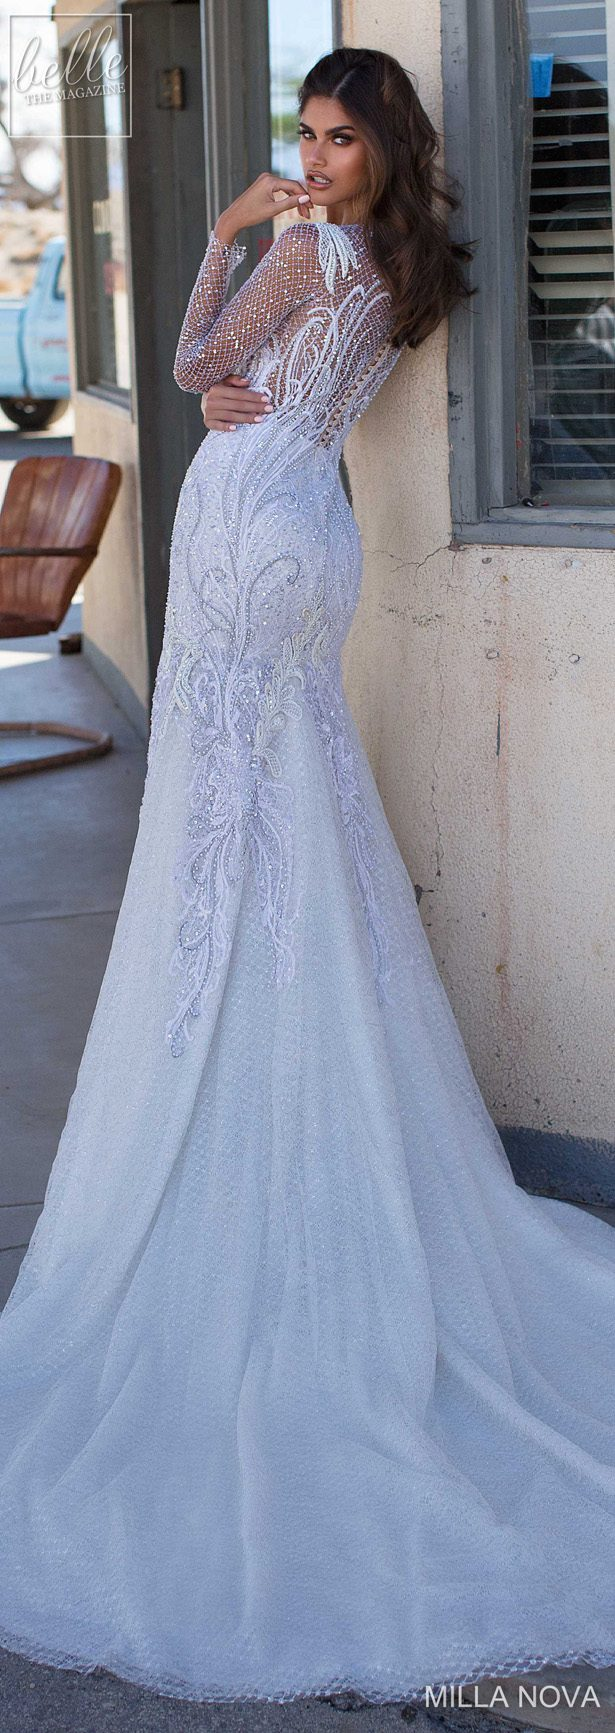 Milla Nova Wedding Dresses 2019 - California Dream Collection - Lexy 80